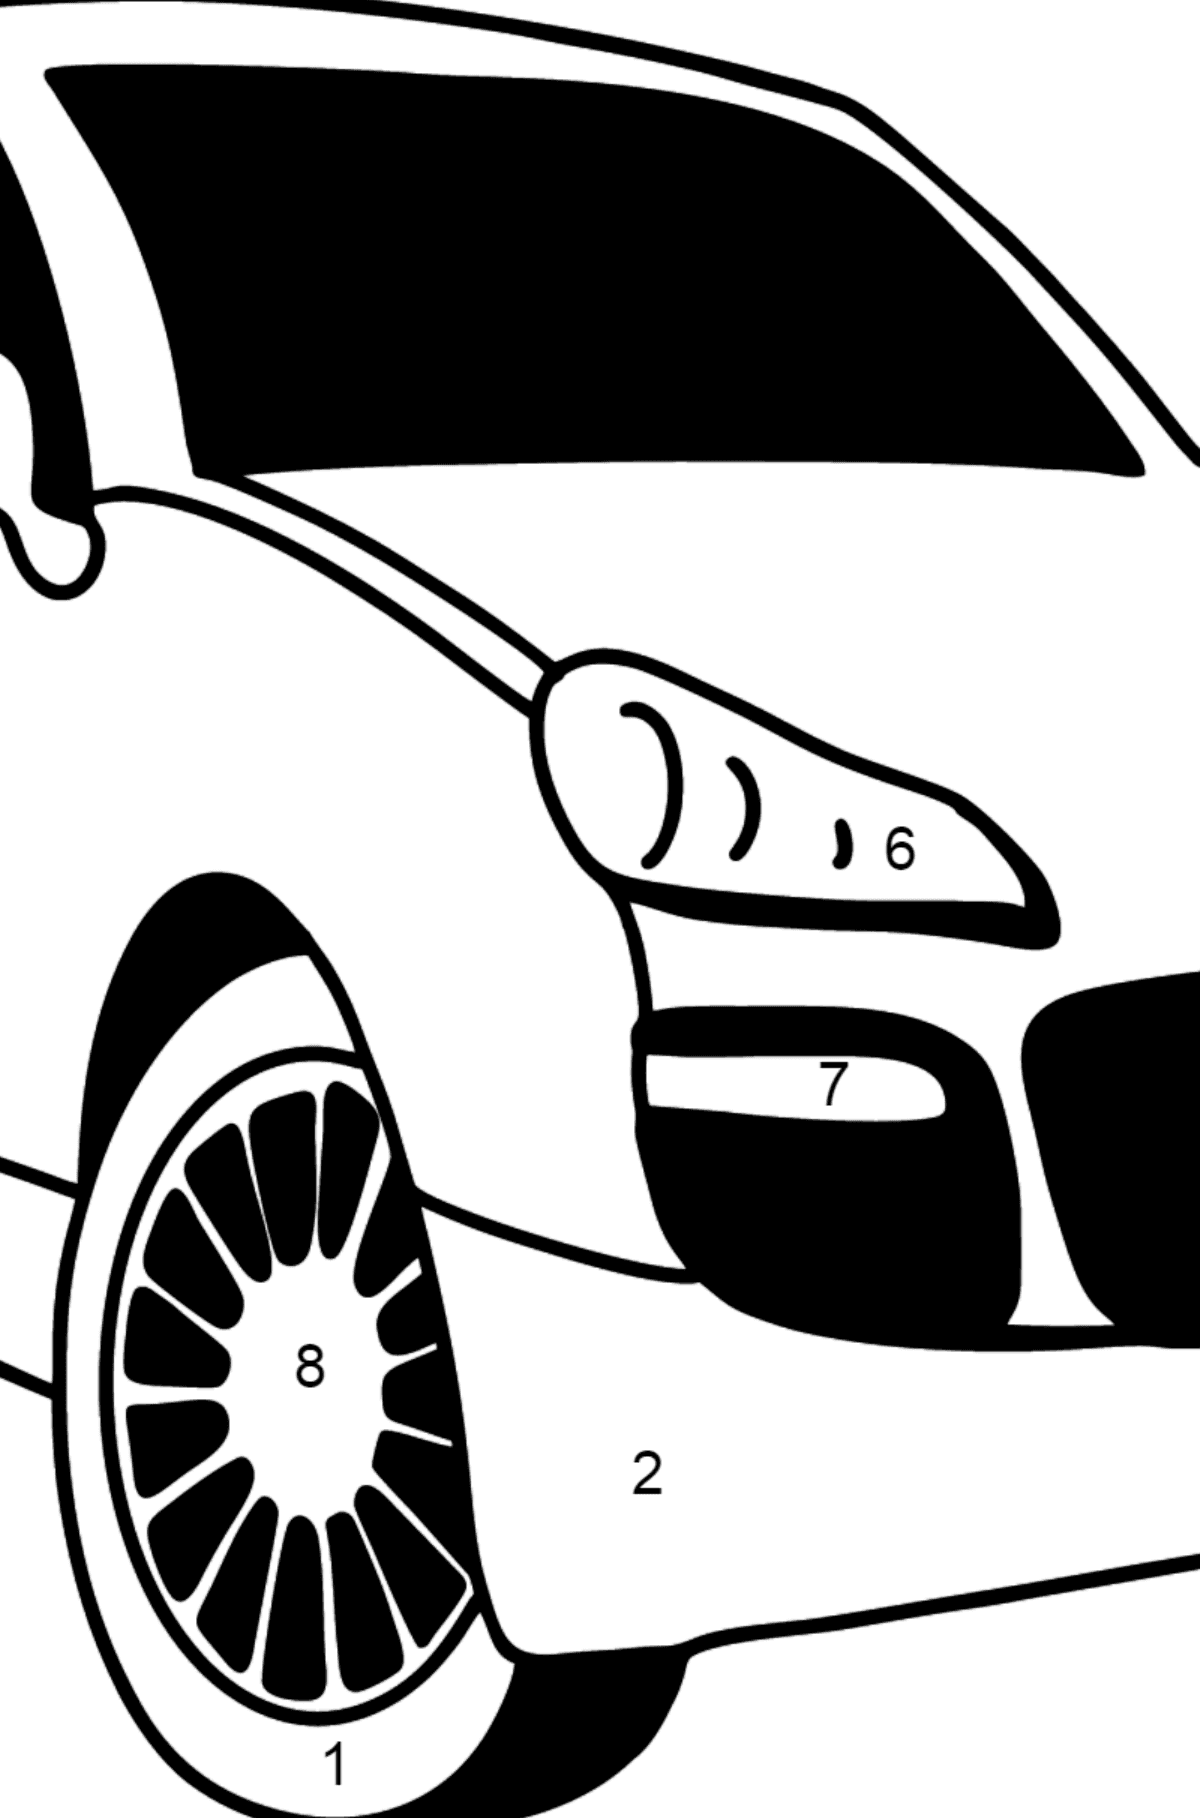 Porsche Cayenne Crossover coloring page - Coloring by Numbers for Kids